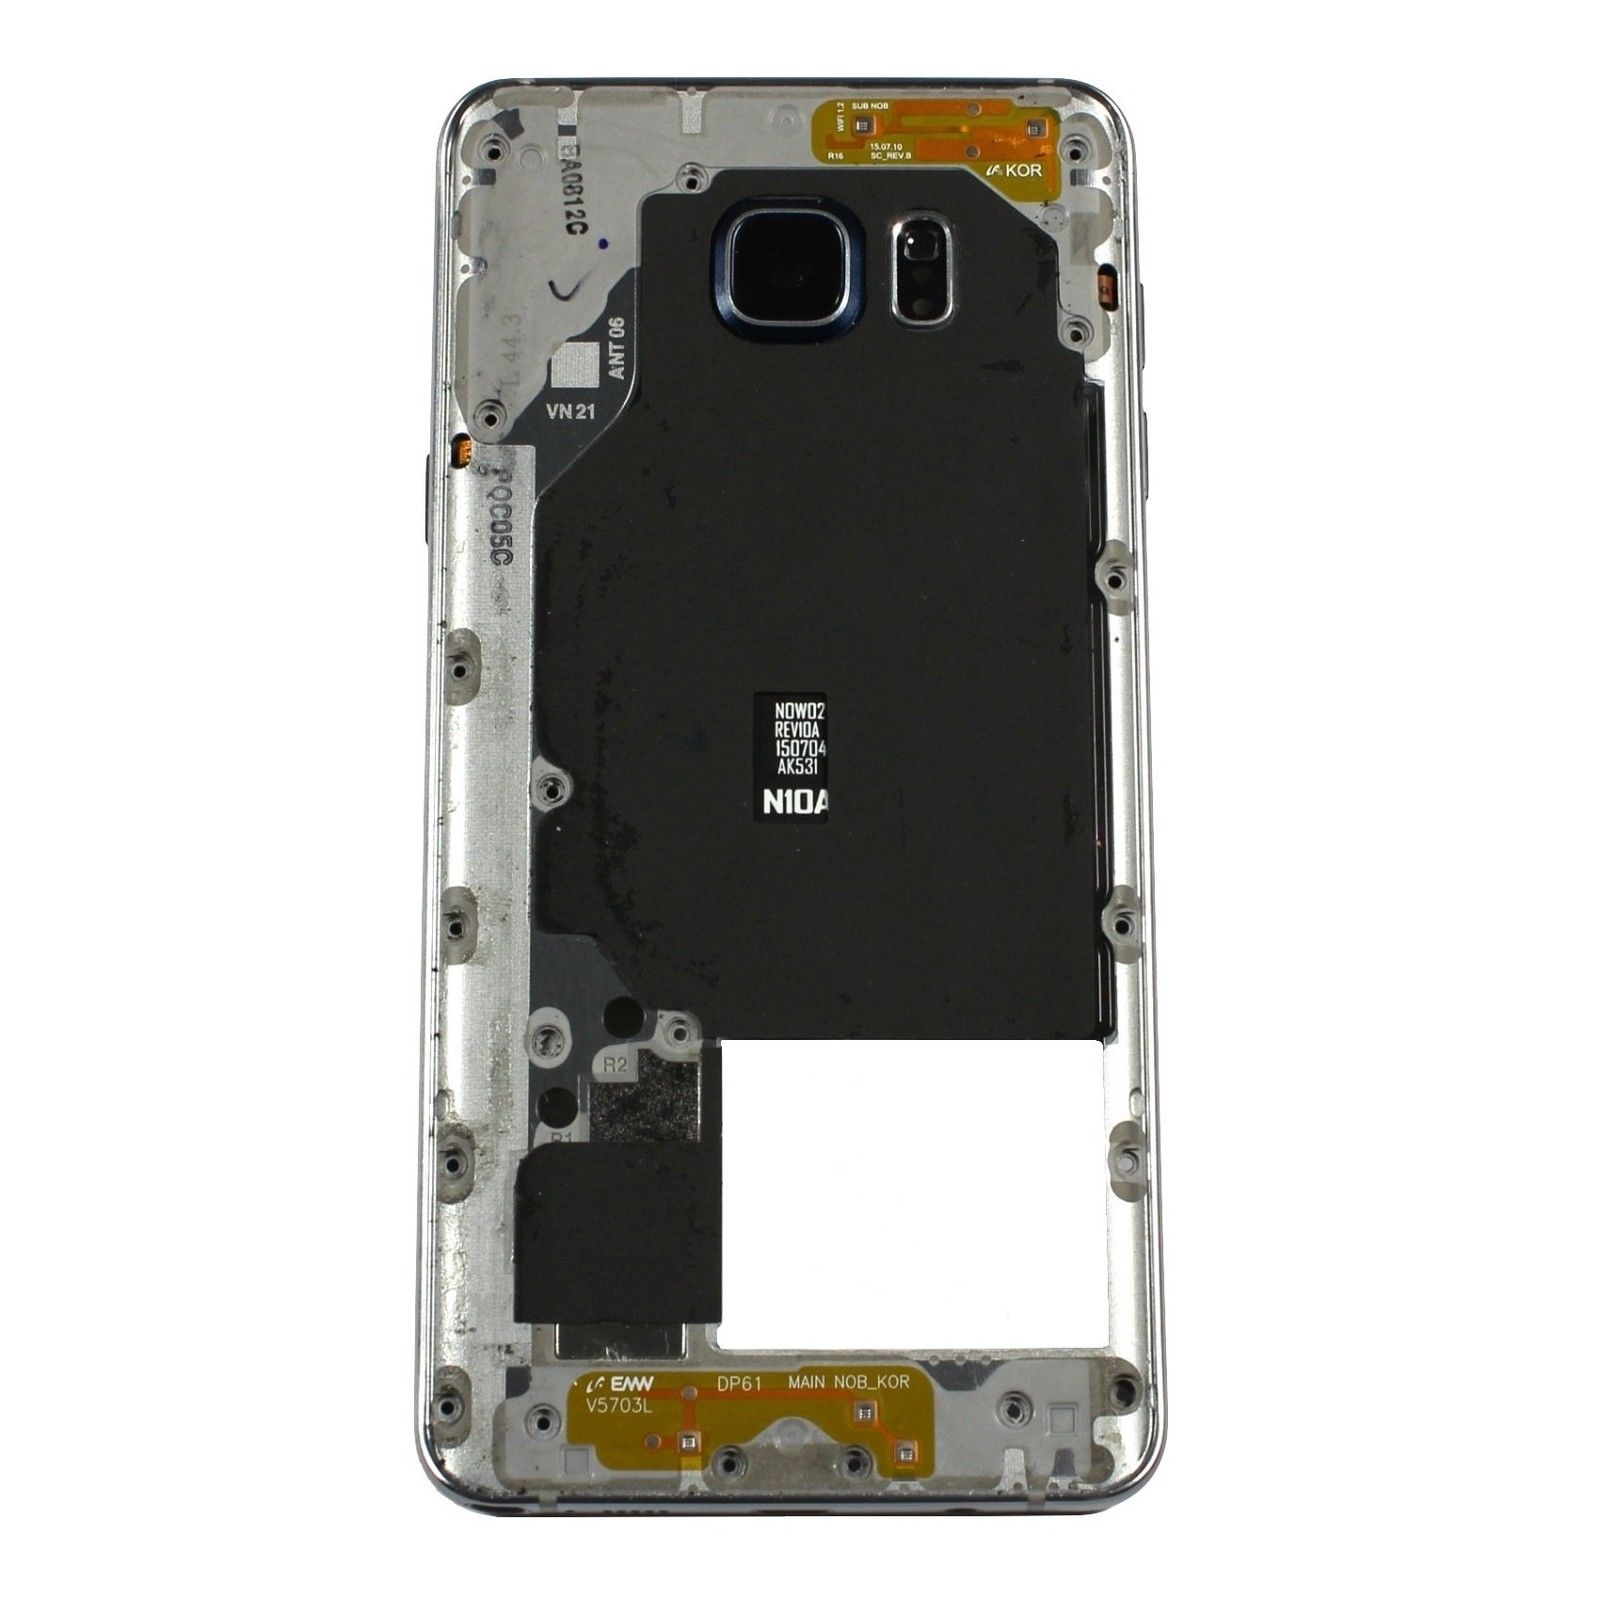 Samsung - 5 N920t About Middle Note Gold Galaxy Frame Details Mid Housing Bezel N920a Chassis